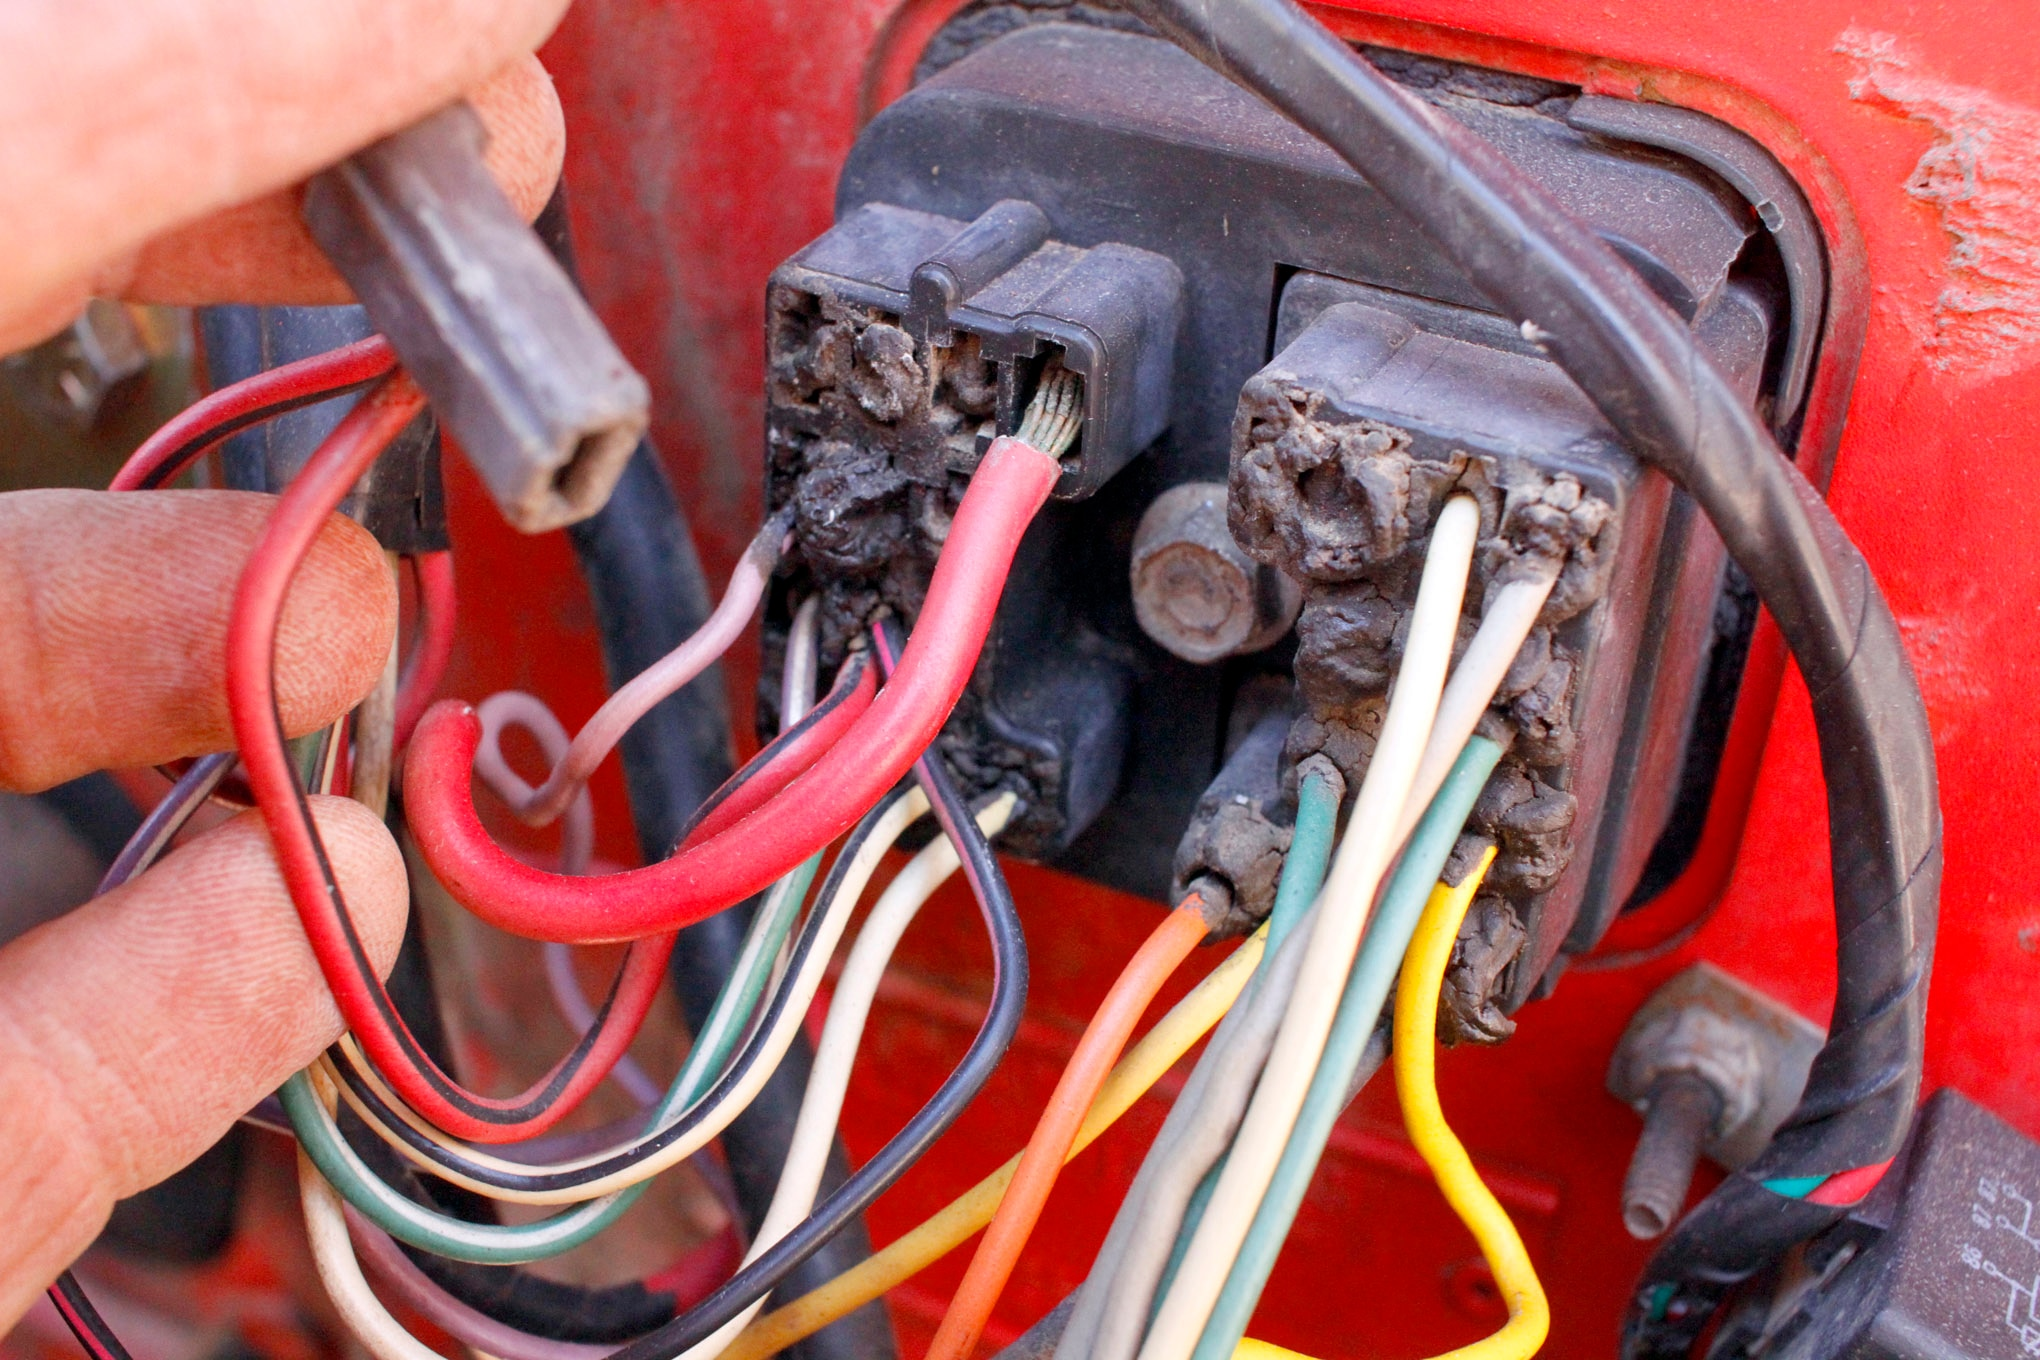 hight resolution of  our wiring had been slowly degrading with age especially those wires subject to underhood heat